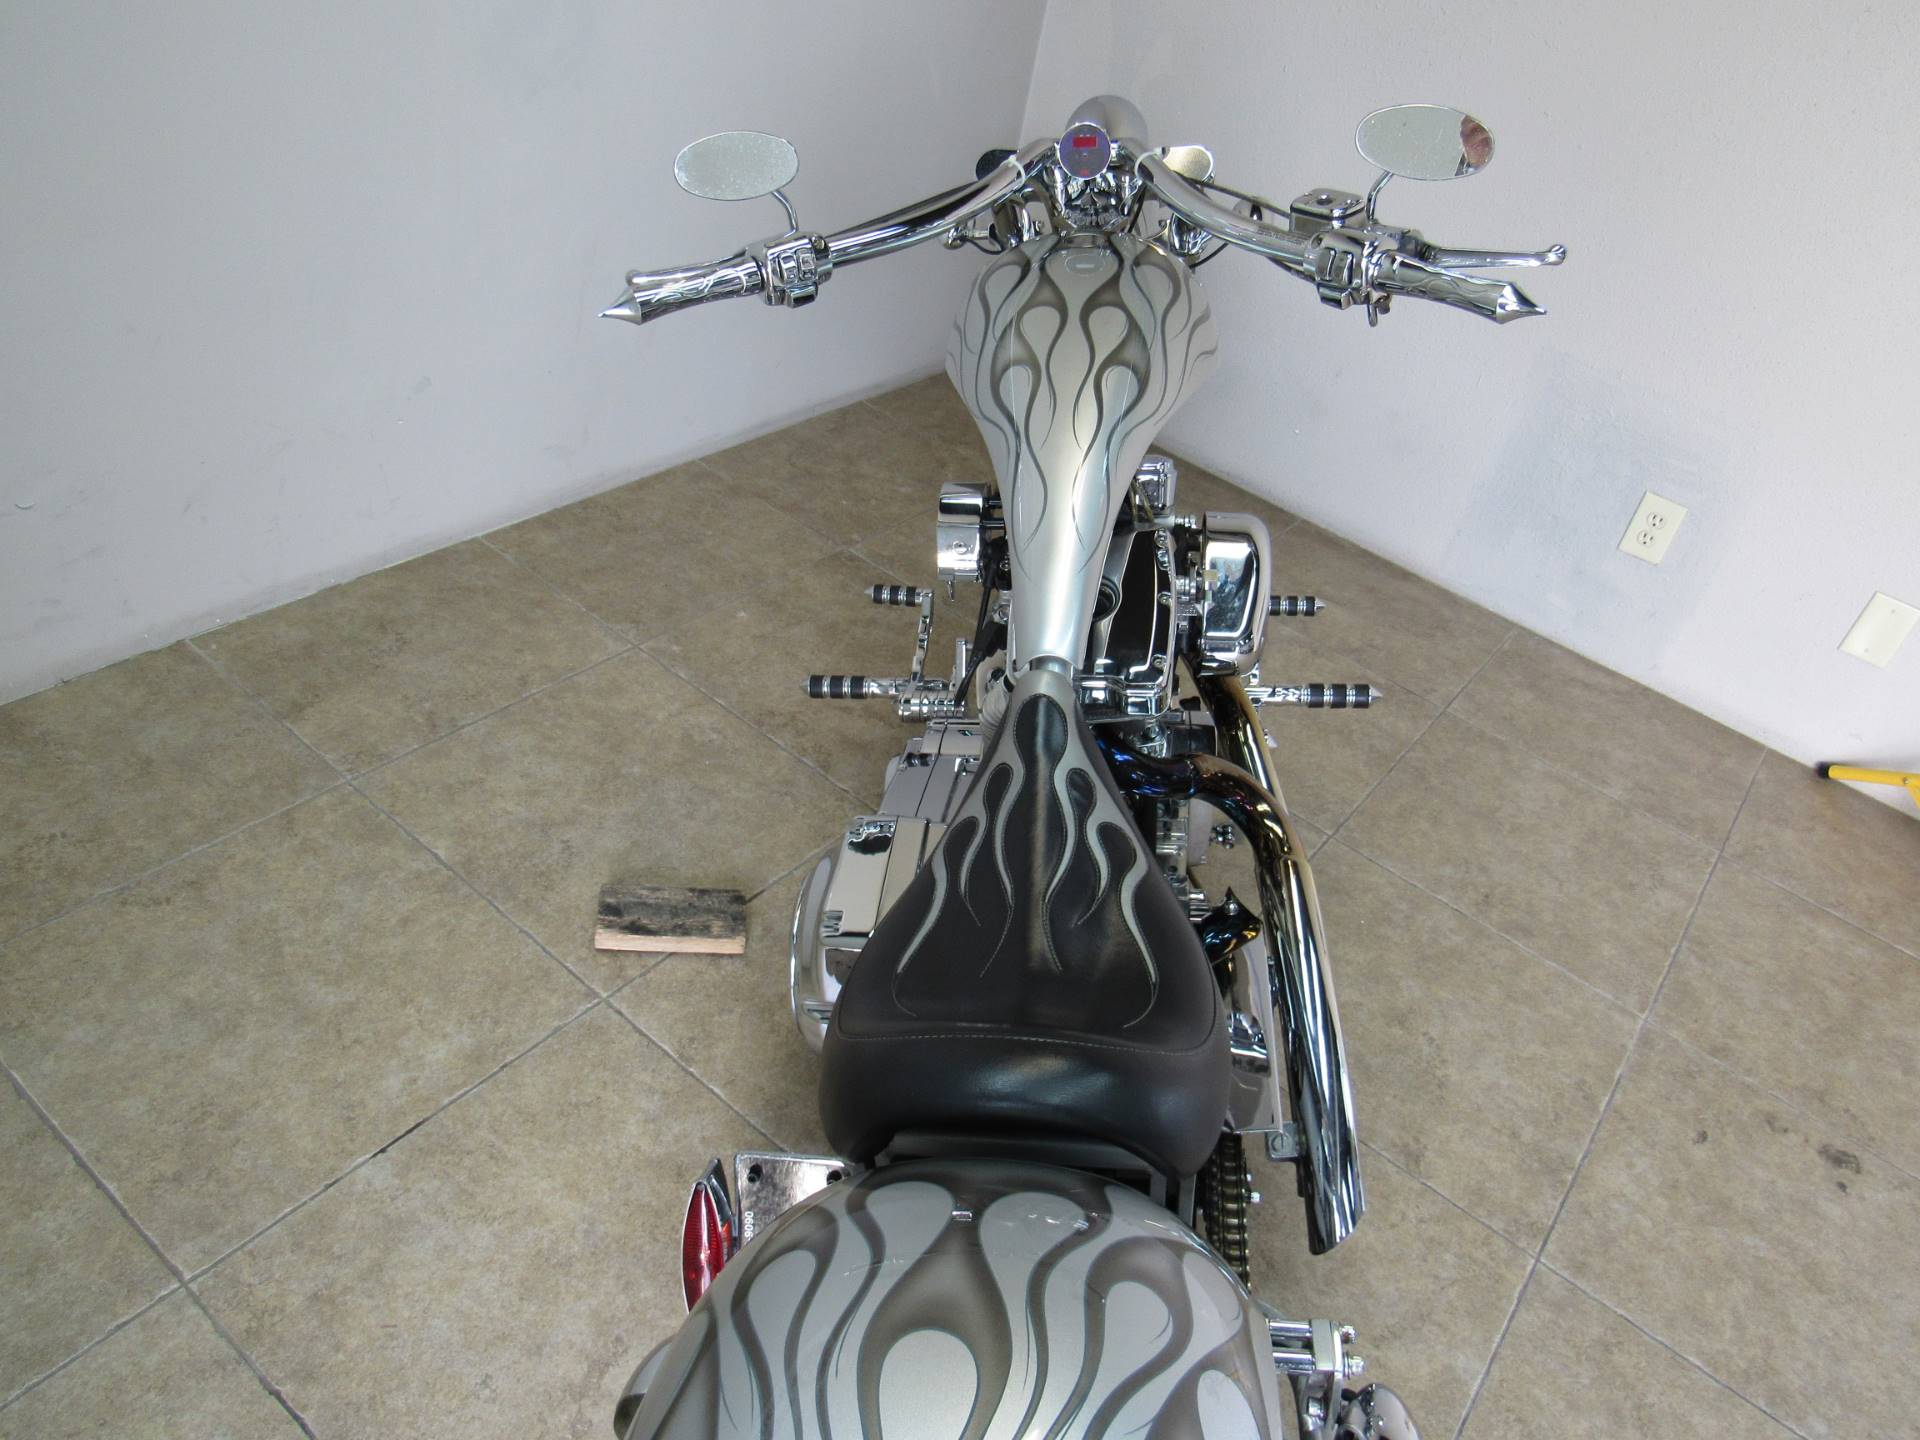 2006 Big Bear Choppers Sled Prostreet (CA) - [SLEDPROSTREET] - Silver in Temecula, California - Photo 11